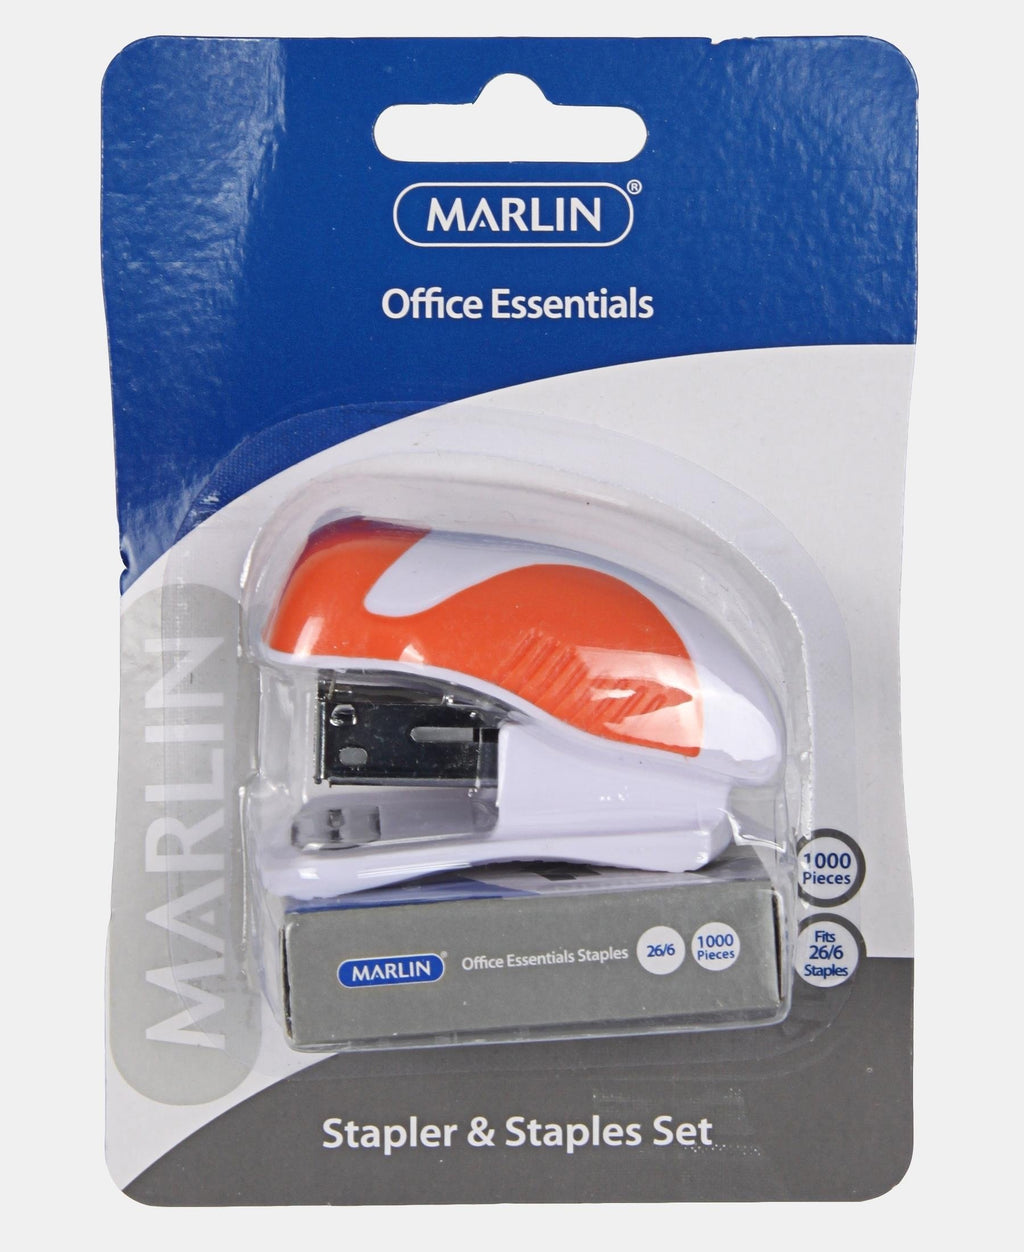 Marlin Mini Stapler And Staples Set - Orange